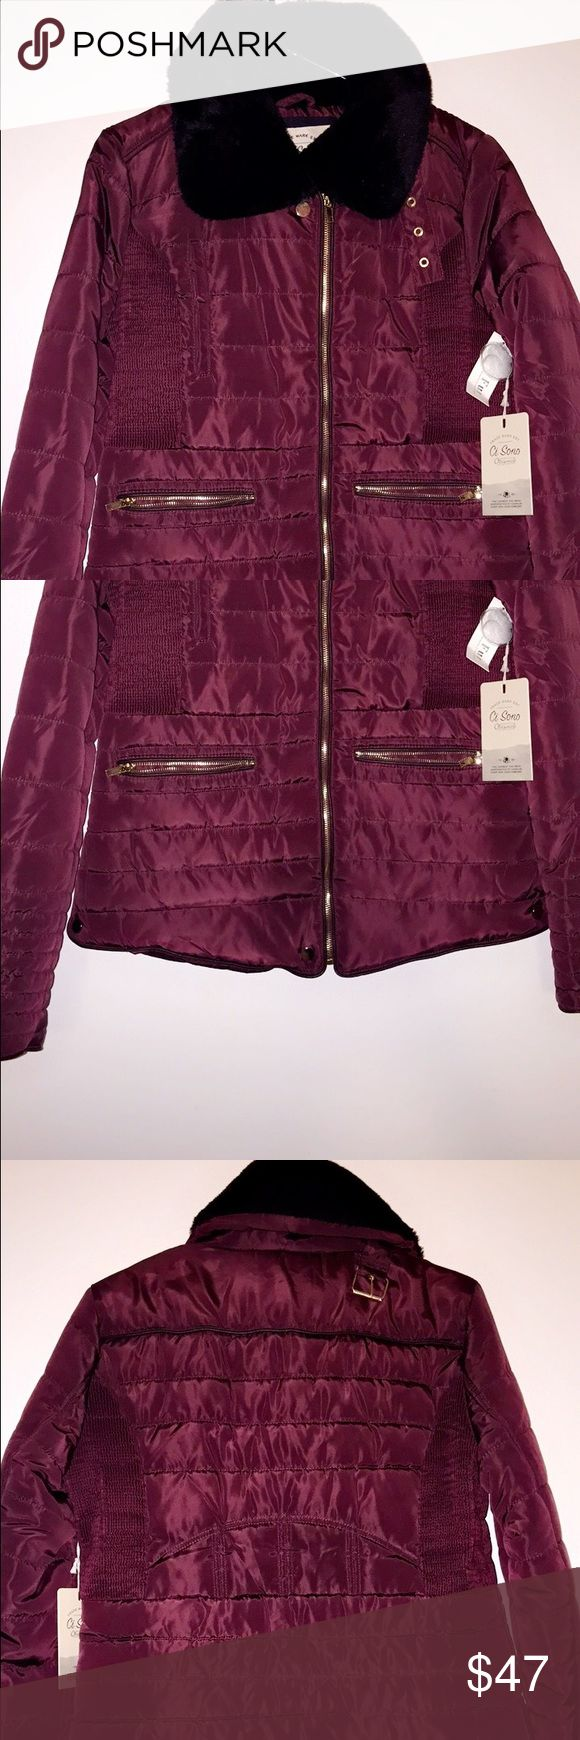 Maroon Coat/Jacket. Size Large The cutest maroon jacket. Great for chilly weather. NEVER WORN. The sides stretch and gives you a great looking shape to your mid section. Size large. Jackets & Coats Puffers